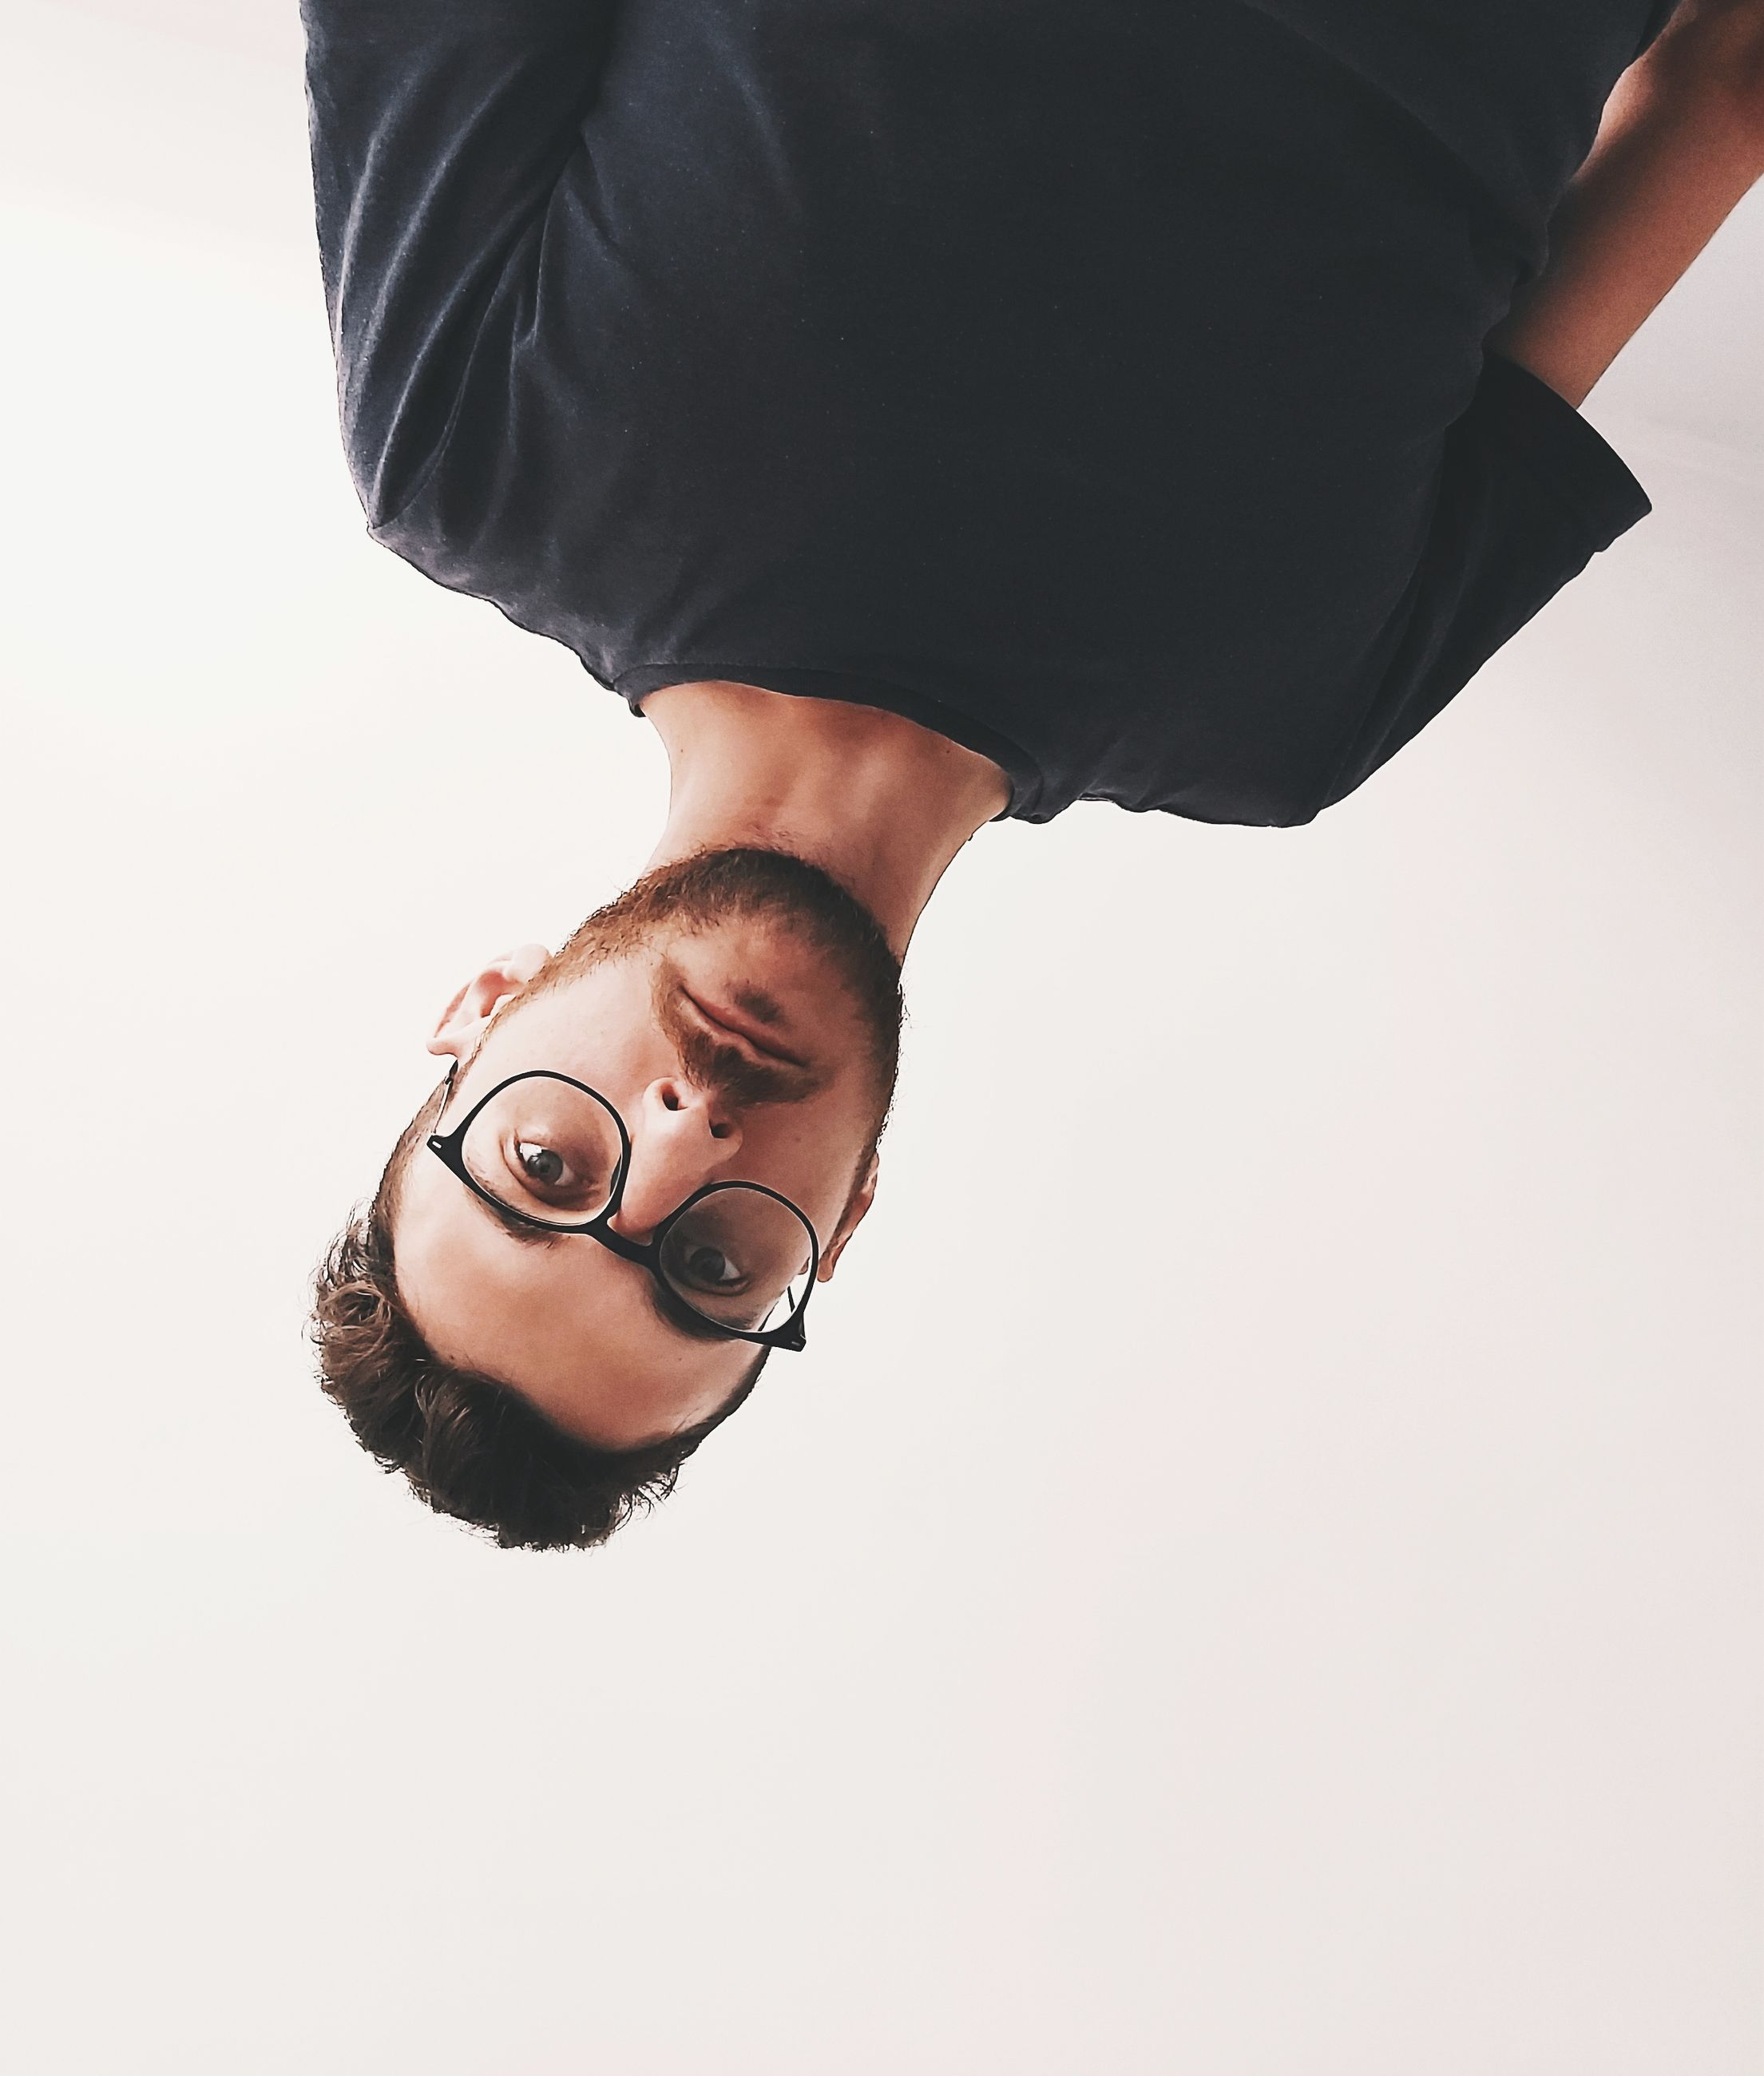 portrait, studio shot, one person, looking at camera, indoors, white background, copy space, men, cut out, front view, headshot, human body part, body part, eyeglasses, young men, males, glasses, young adult, lifestyles, human face